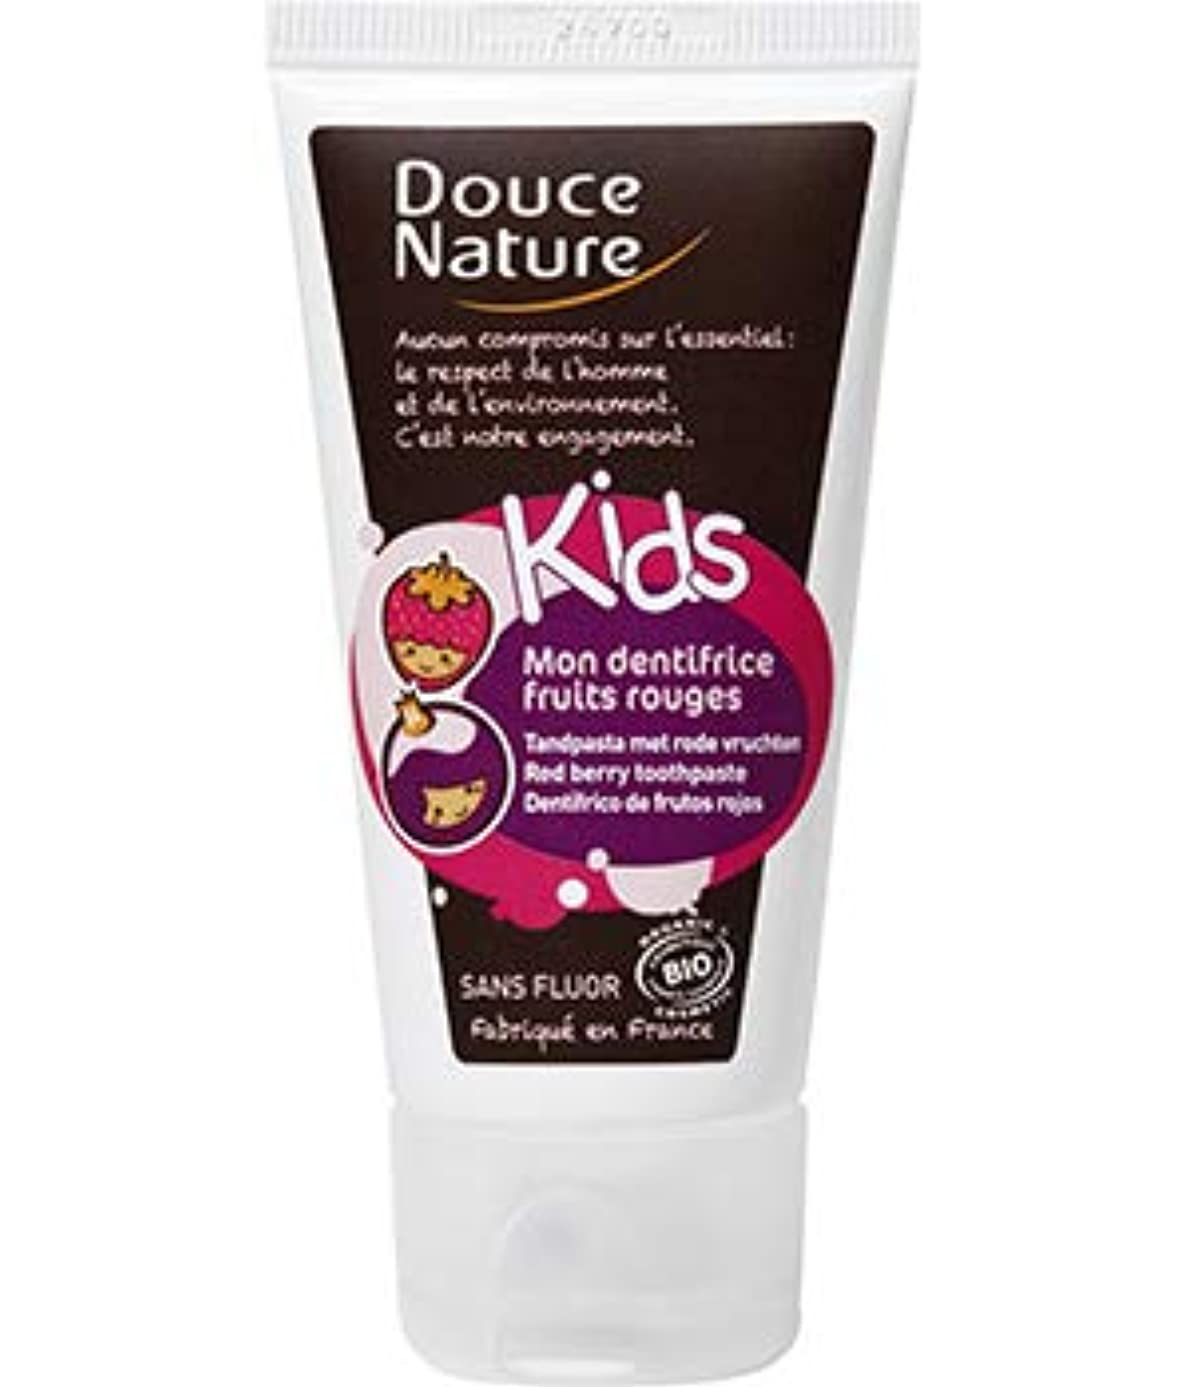 Douce Nature Organic Red Berry Toothpaste For Kids 50ml - Fluorine Free - Protects Teeth Enamel - Effectively Brushes Teeth - Gentle On Gums - Formula Specifically Developed For Children - Hong Kong